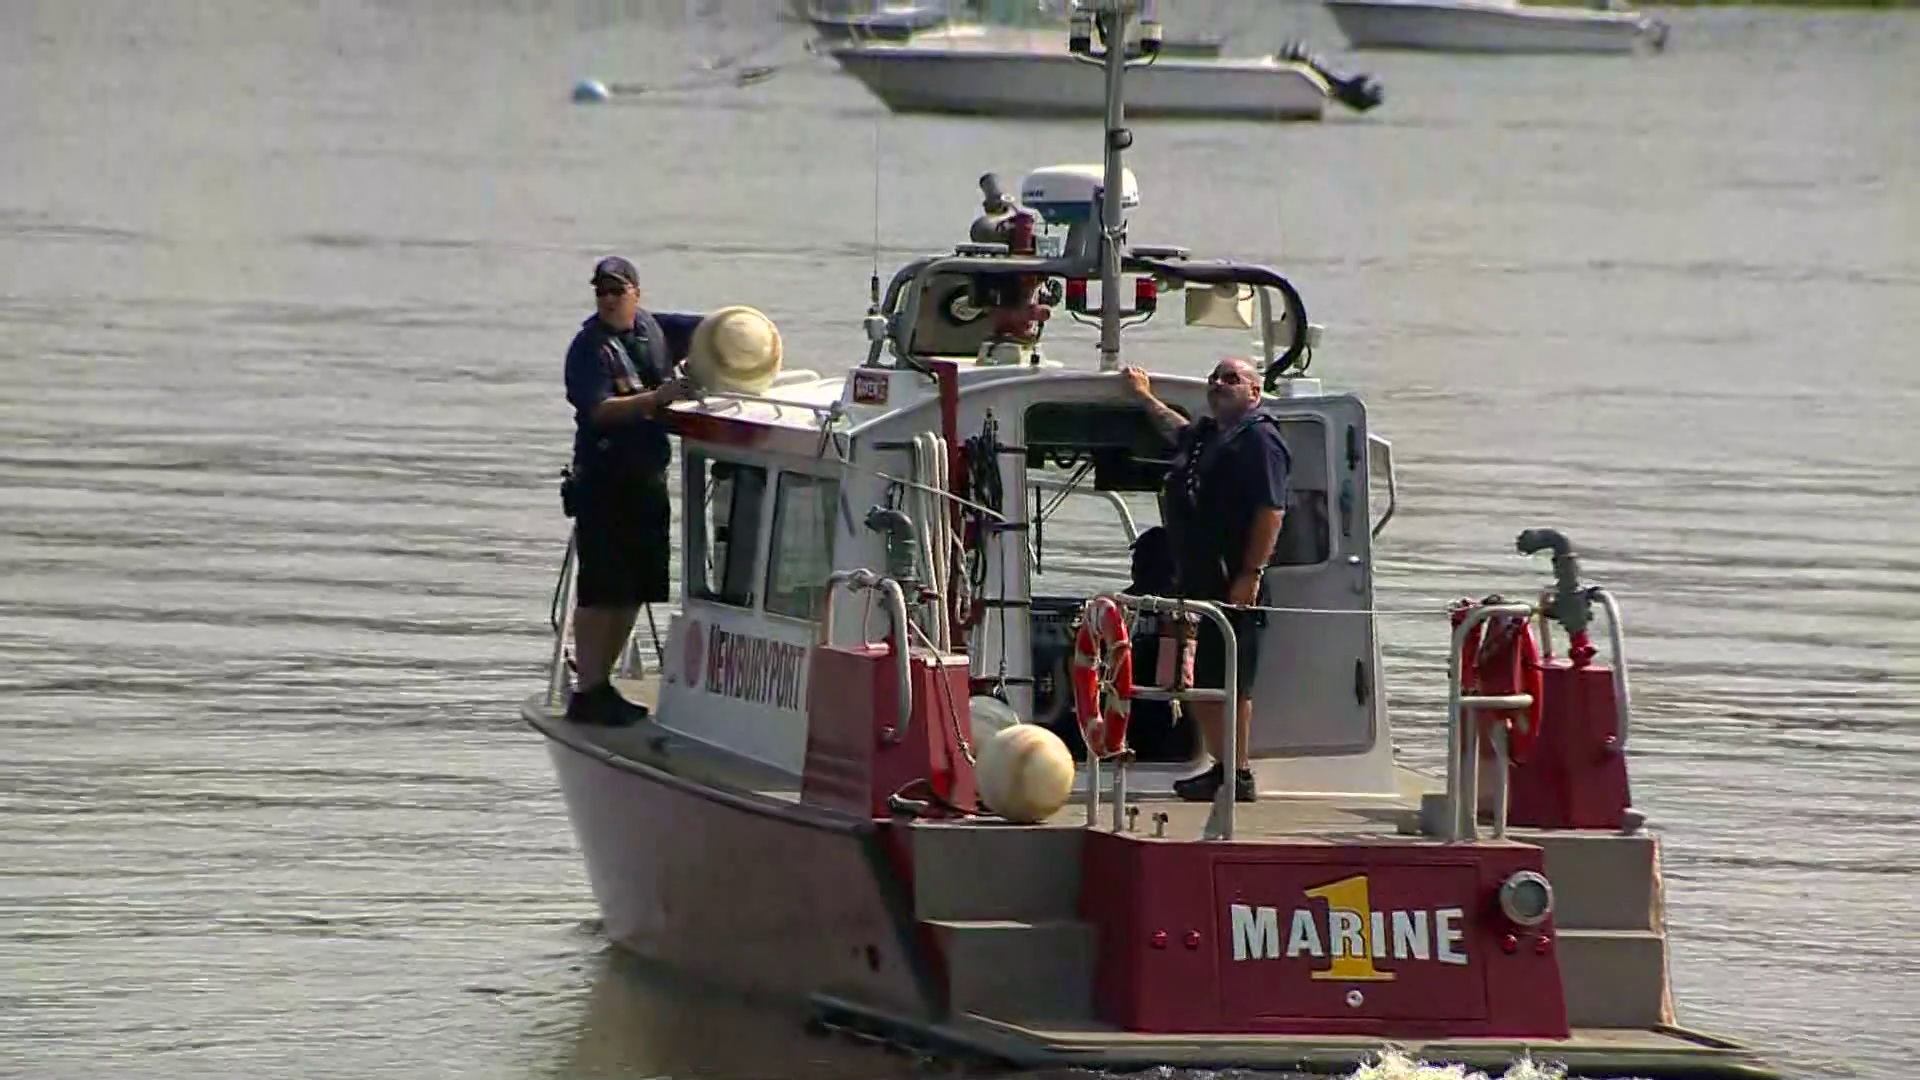 Divers search waters near boat club for missing man